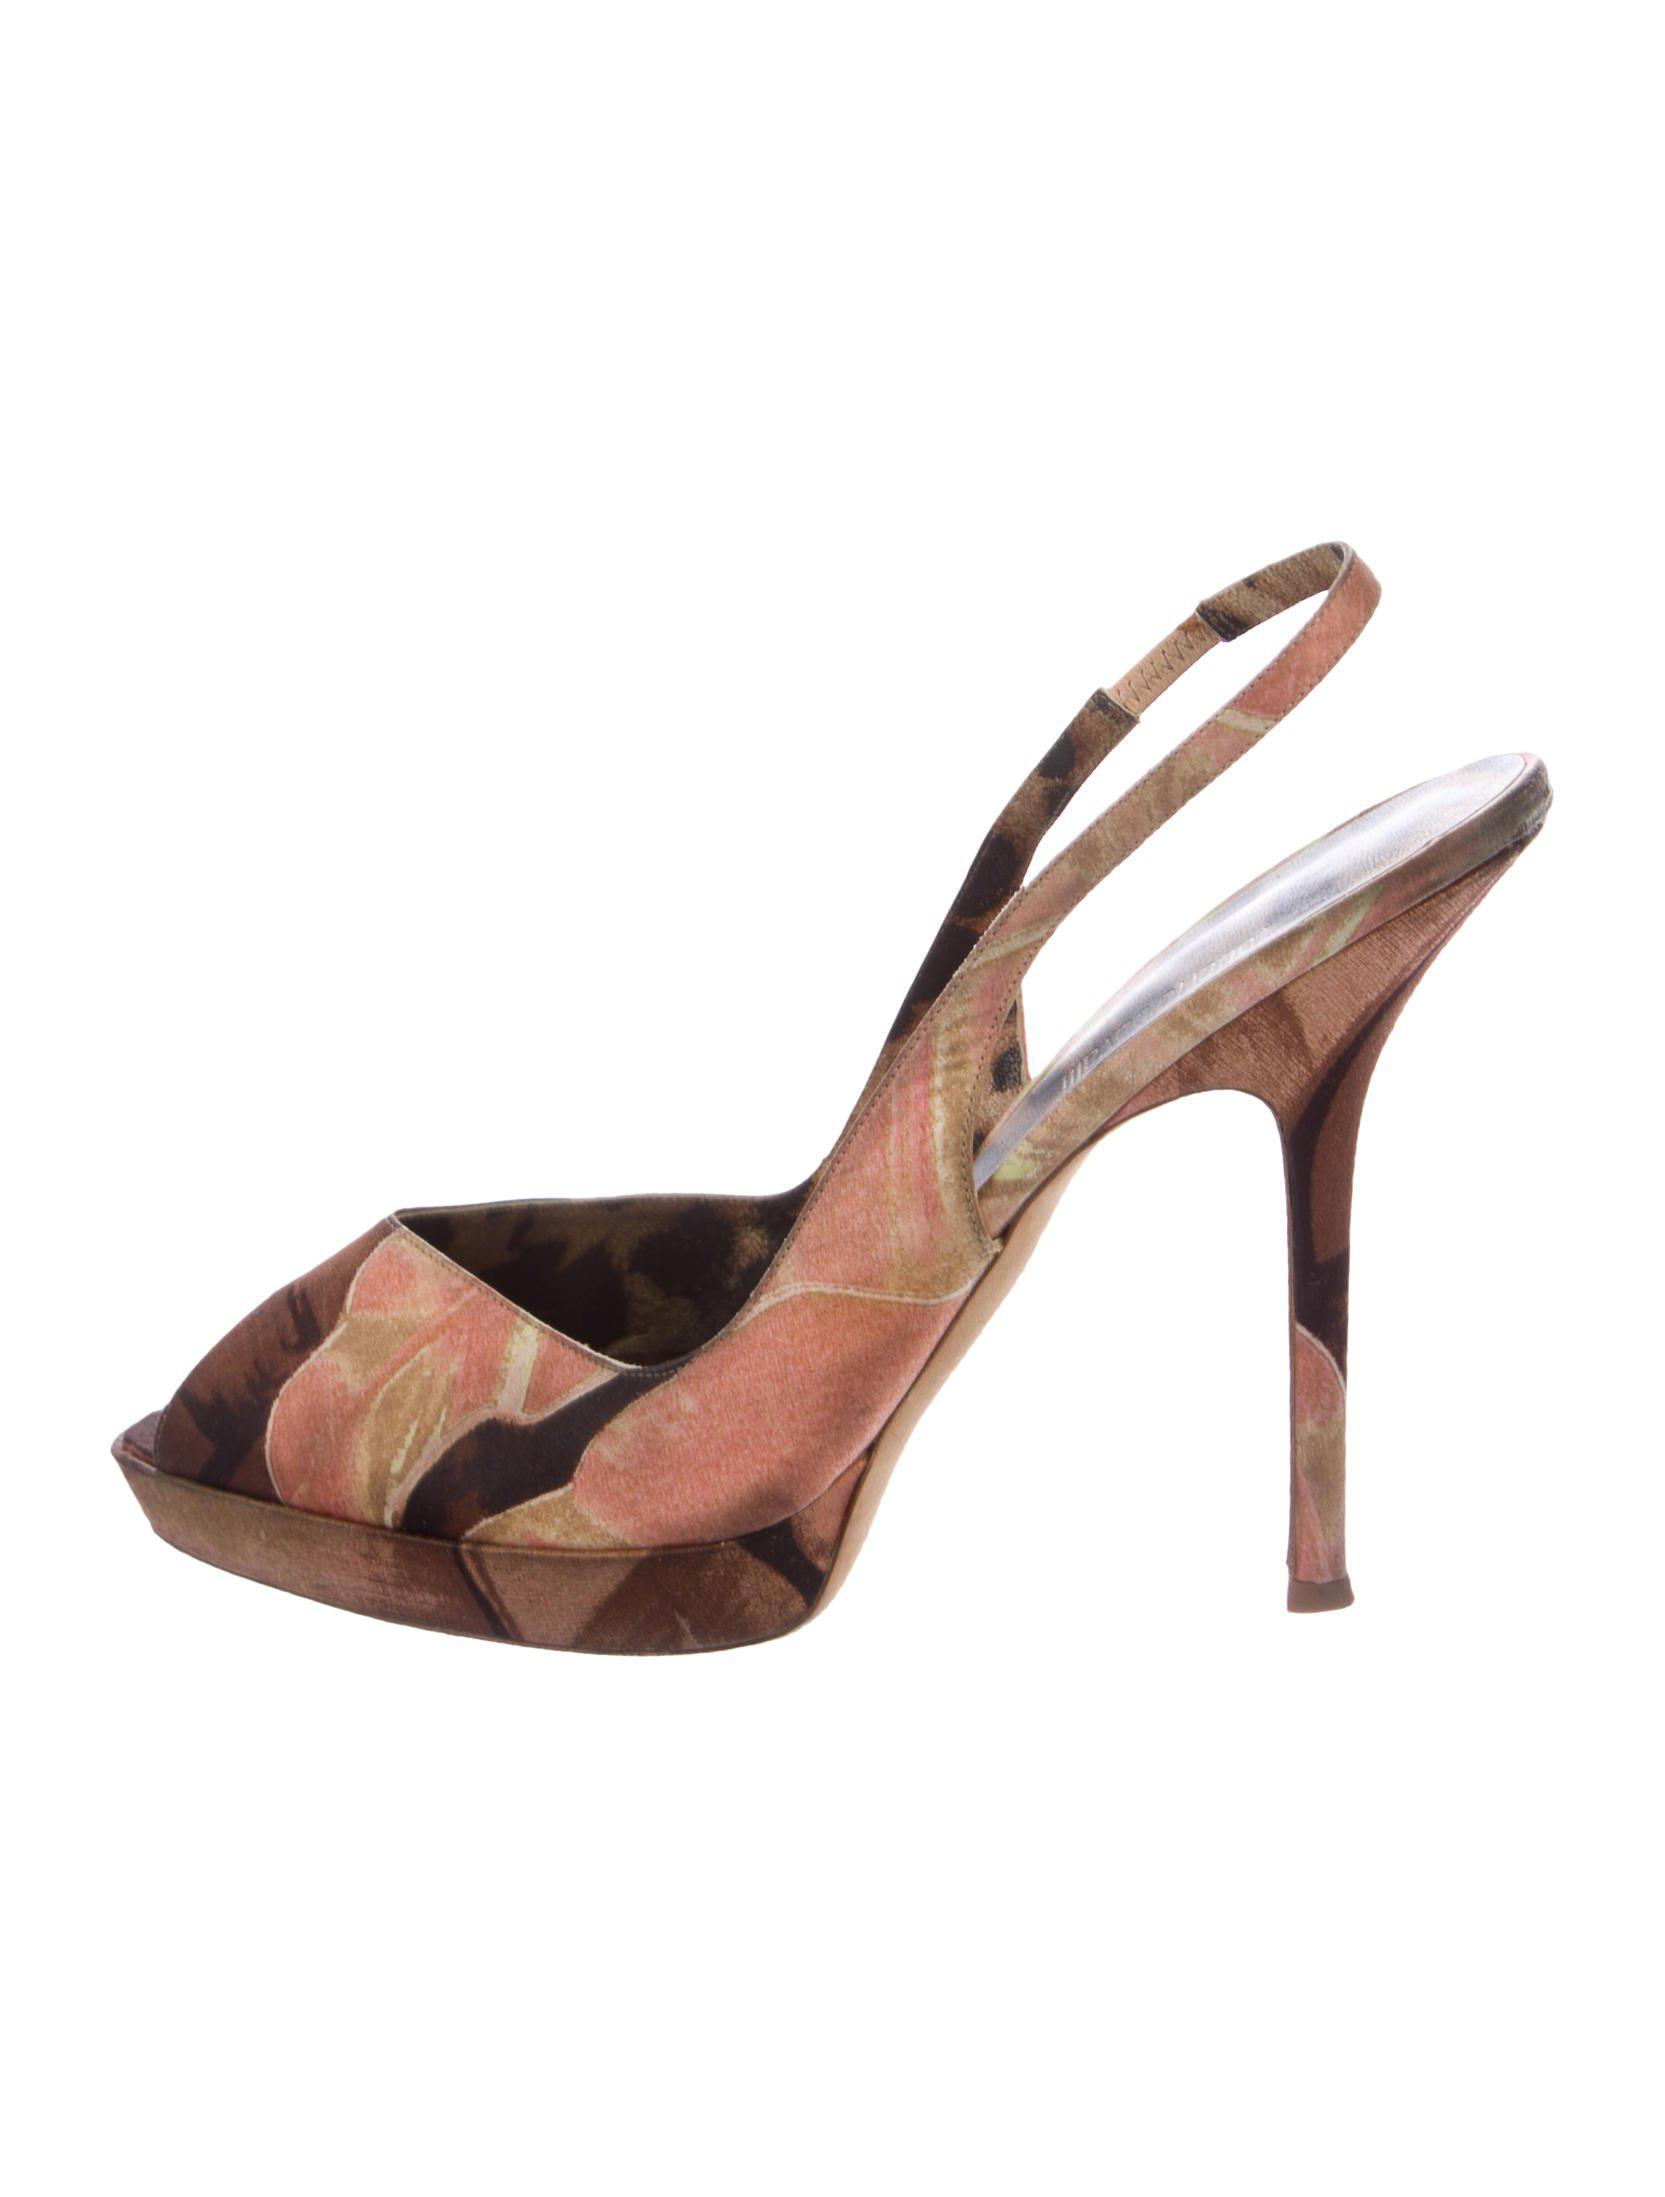 really online quality for sale free shipping Roberto Cavalli Satin Slingback Pumps discount with paypal Cgd3Kooq